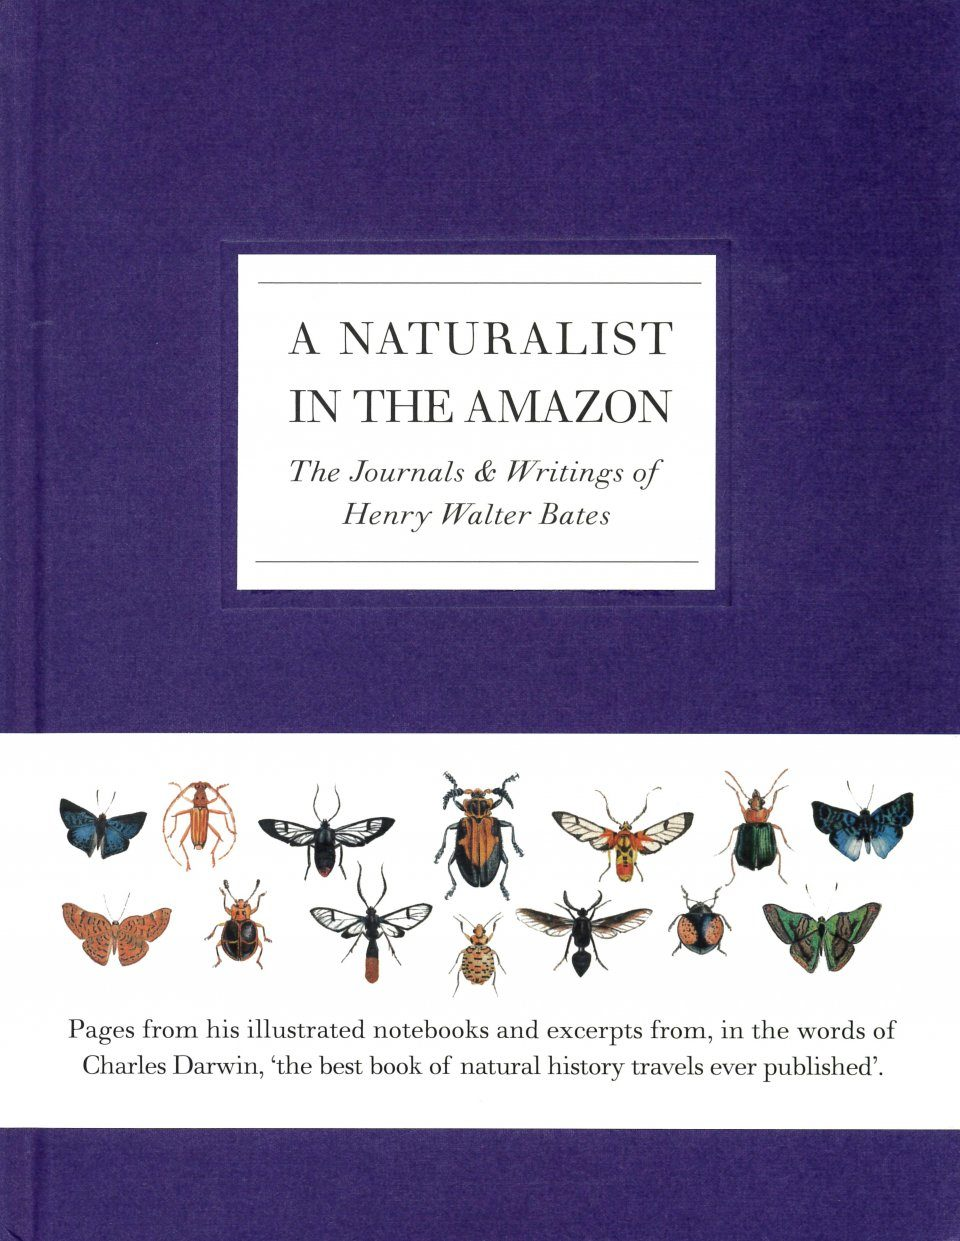 A Naturalist in the Amazon